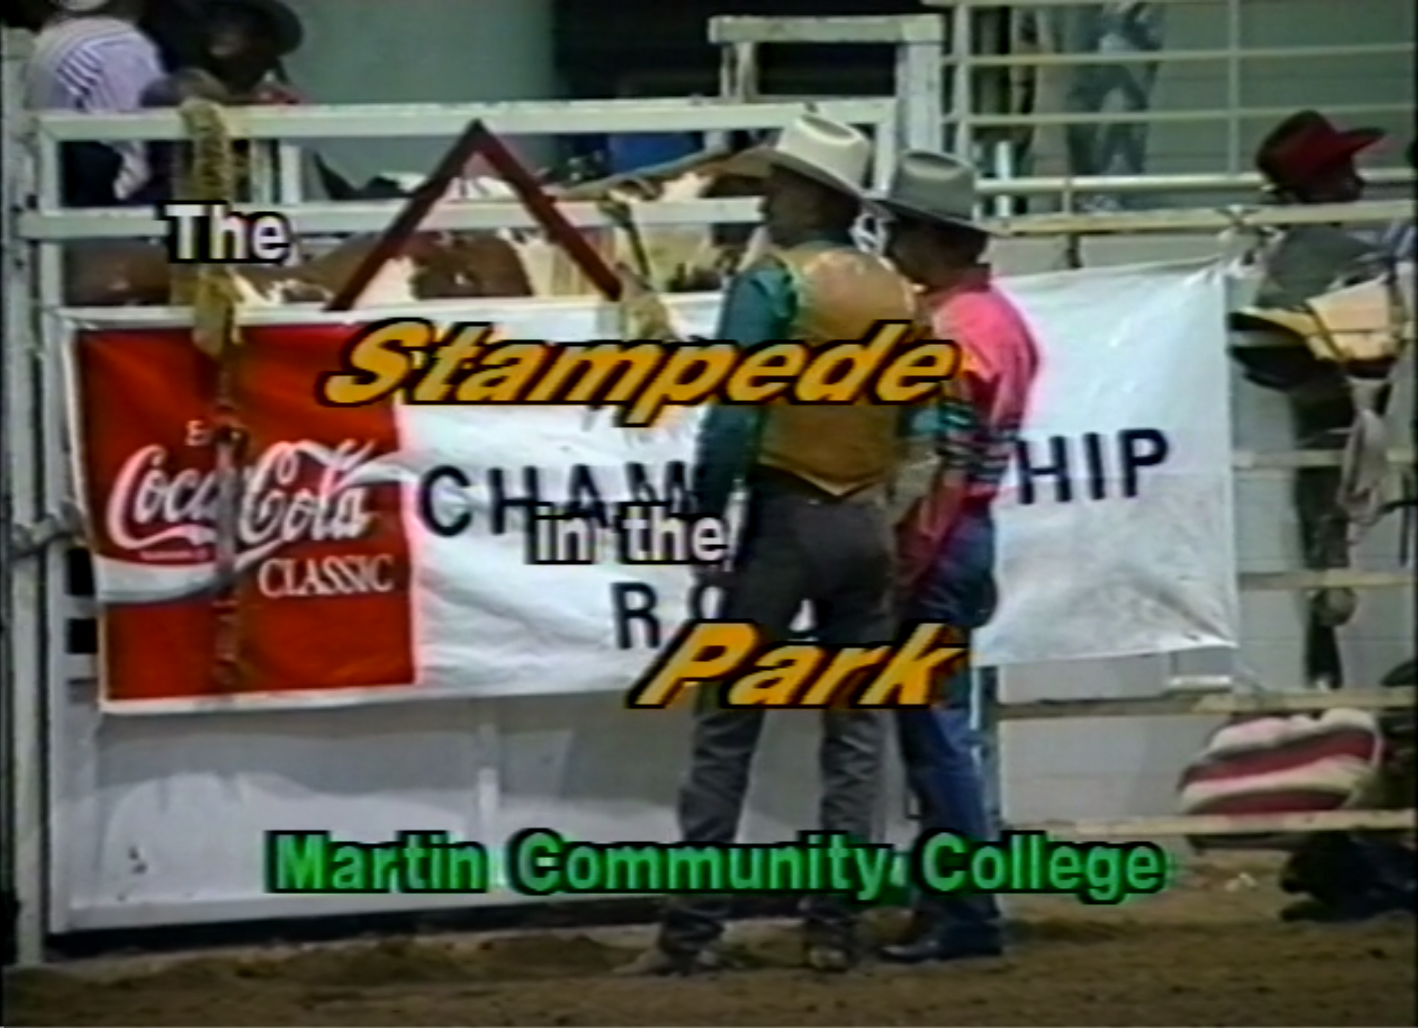 """Title card for The Stampede in the Park, Rodeo, 1992 video. Two people standing participating in a rodeo standing in front of an advertisement. Over the picture the worlds """"The Stampede in the Park, Martin Community College."""""""